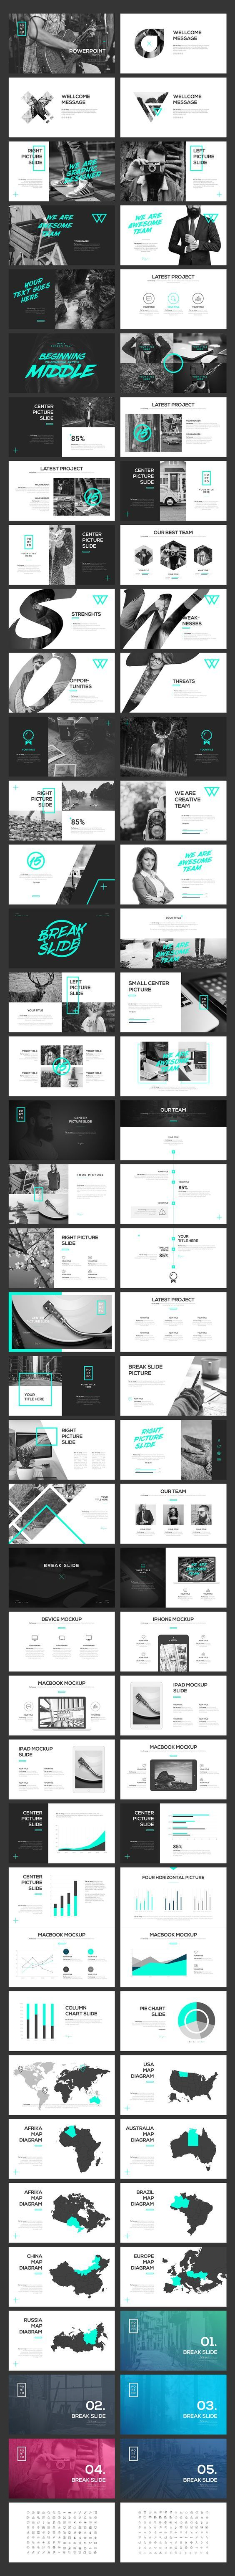 PORTFO Keynote Template by Angkalimabelas on @creativemarket: